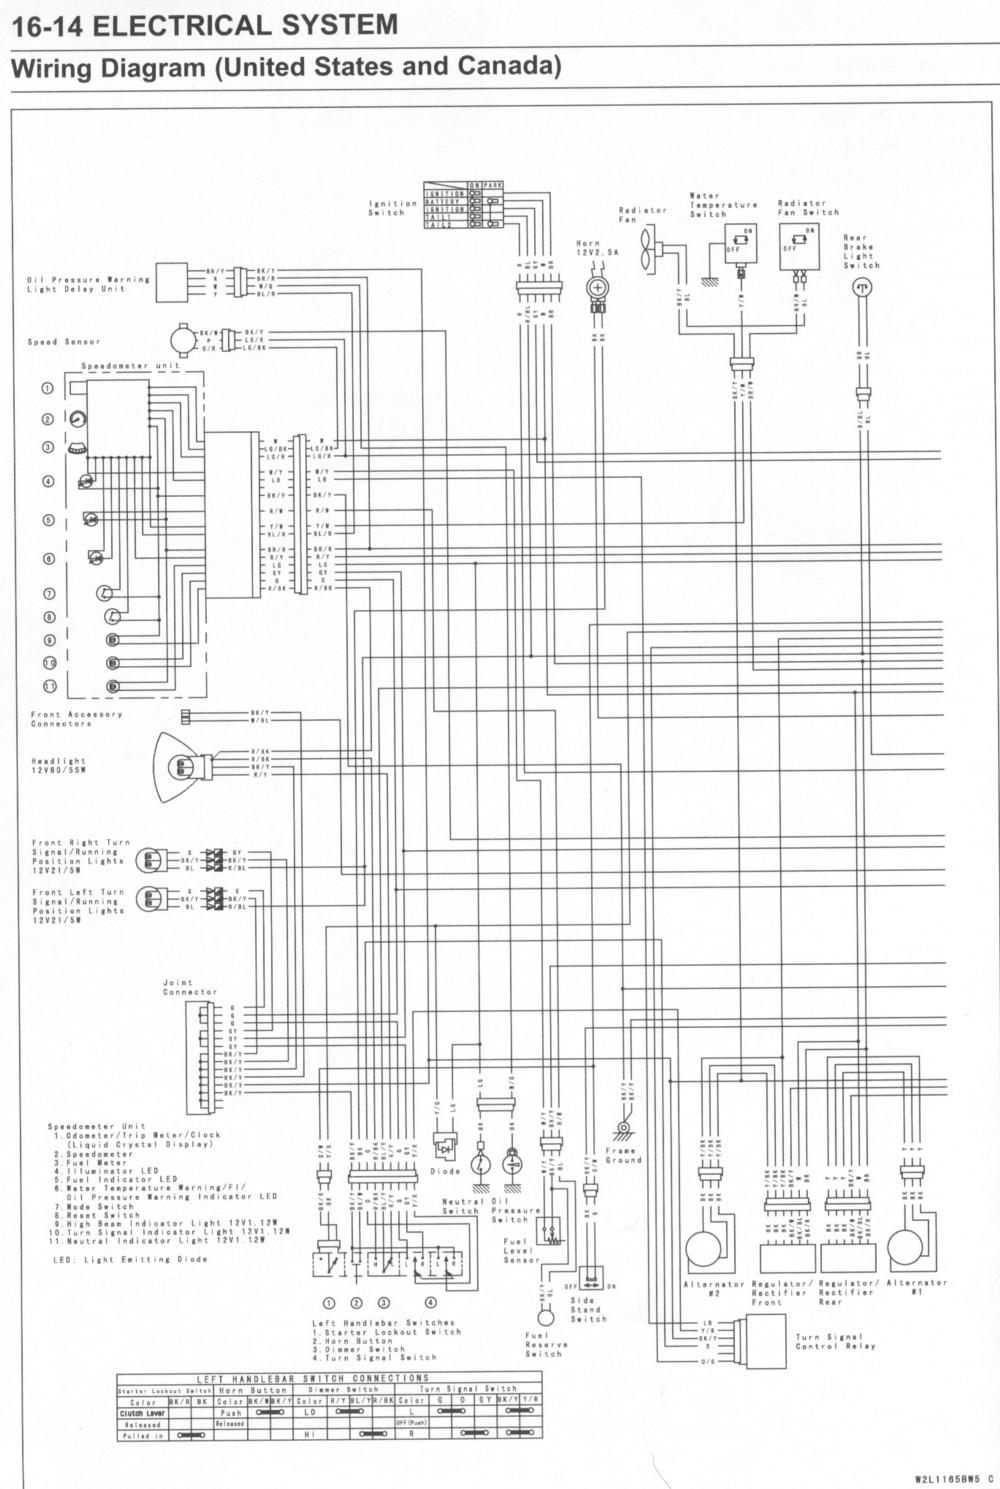 Kawasaki Zg1200 Wiring Diagram | Wiring Diagram on kawasaki concours timing, kawasaki kz1000 wiring diagram, kawasaki concours carburetor, kawasaki concours forum, kawasaki concours maintenance schedule, kawasaki vulcan 750 wiring diagram, kawasaki concours controls, kawasaki concours tires, kawasaki concours seats, kawasaki concours spark plugs, kawasaki gpz1000rx wiring diagram, kawasaki concours exhaust, kawasaki vulcan 800 wiring diagram, kawasaki concours frame, kawasaki concours parts, kawasaki concours turn signals, kawasaki ke100 wiring diagram, kawasaki concours lights, kawasaki concours engine, kawasaki zrx wiring diagram,